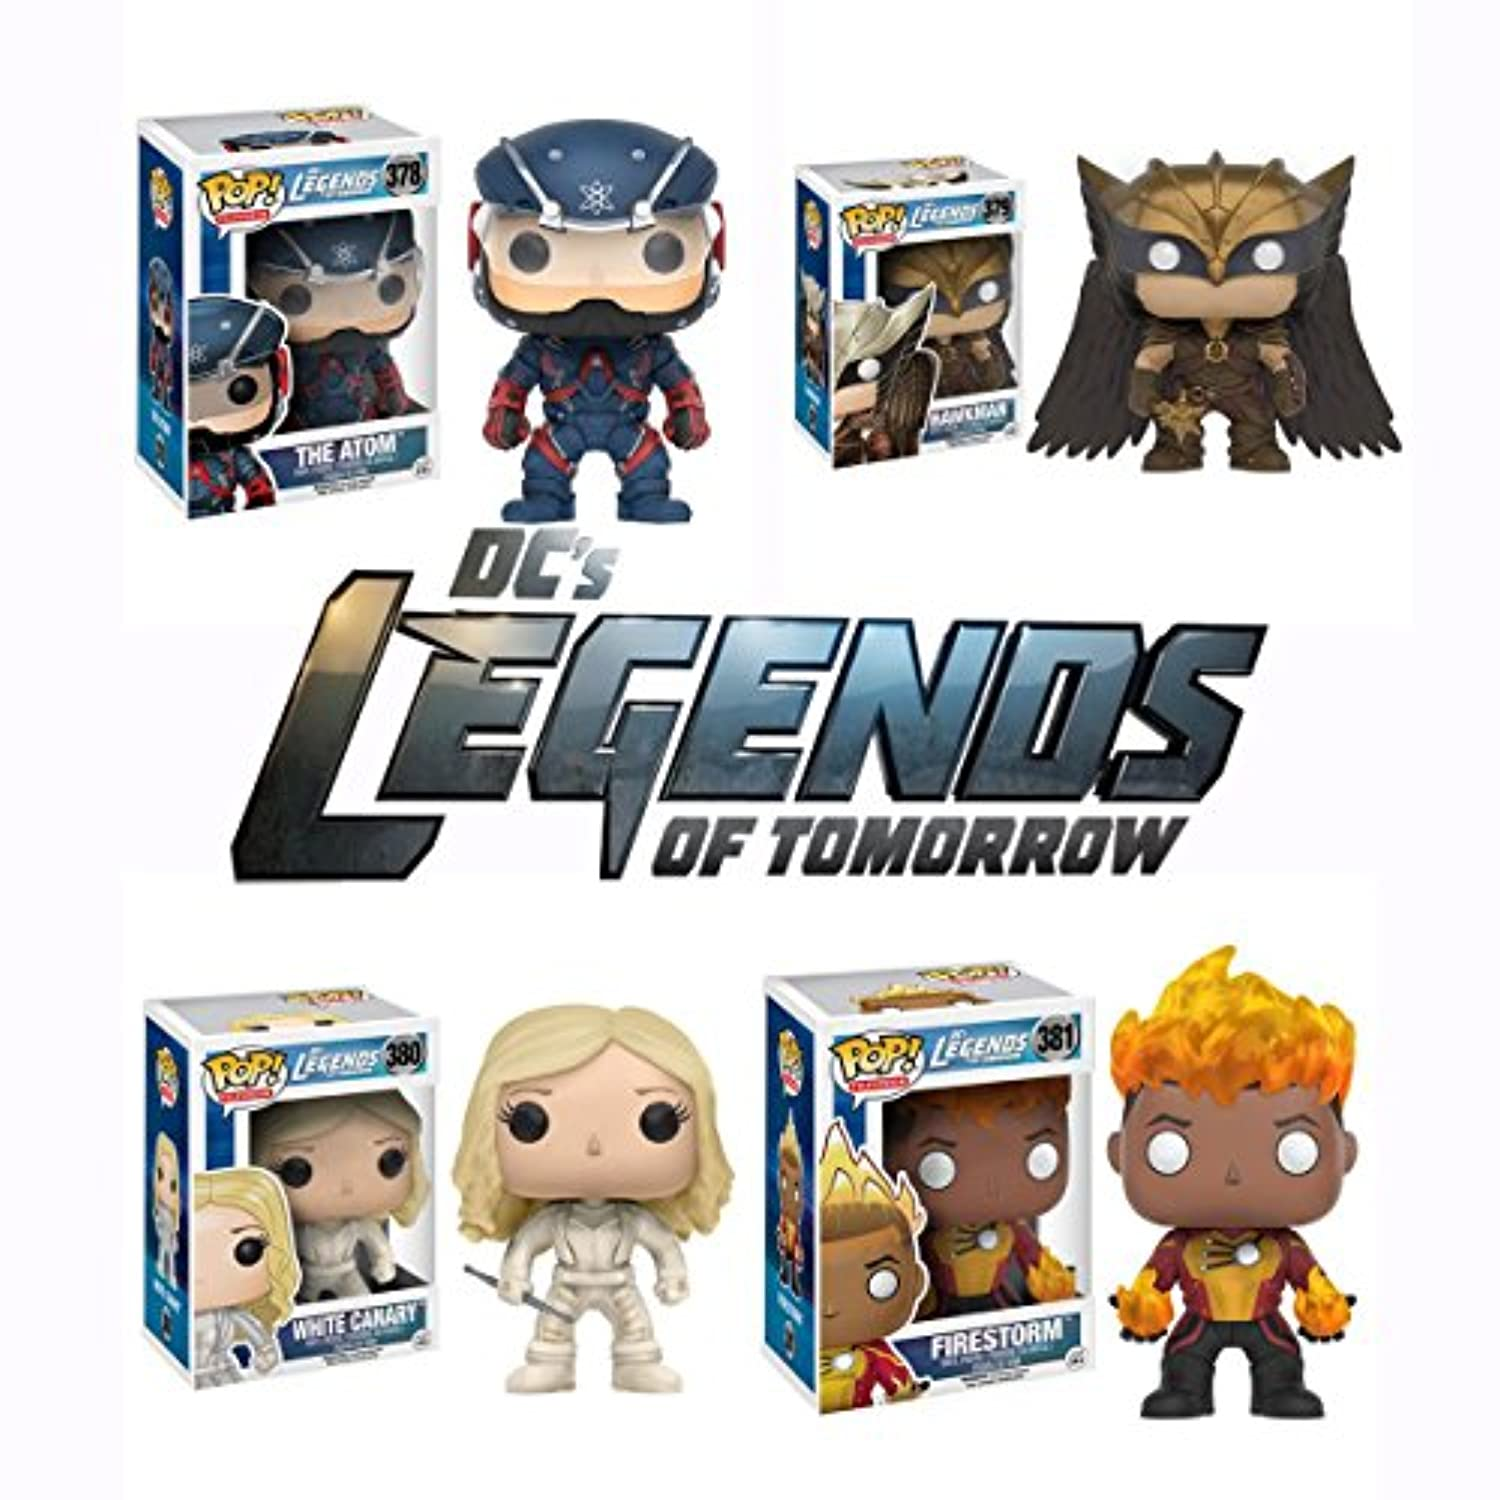 Pop! TV: DC's Legends of Tomorrow - The Atom, Hawkman, White Canary, and Firestorm Vinyl Figures! Set of 4 by Legends of Tomorrow